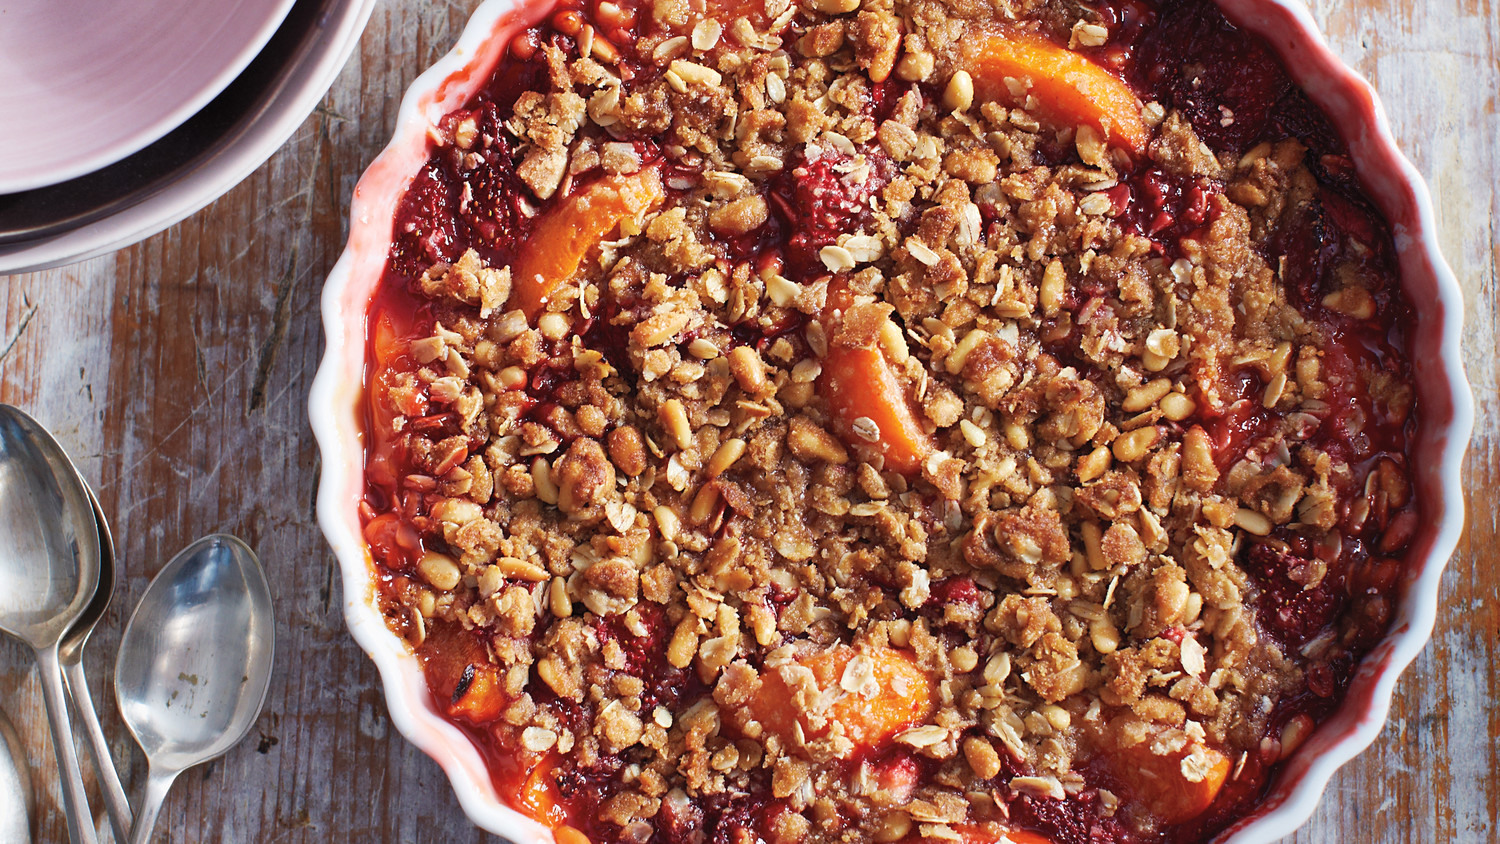 Strawberry And Apricot Crisp With Pine Nut Crumble Recipe